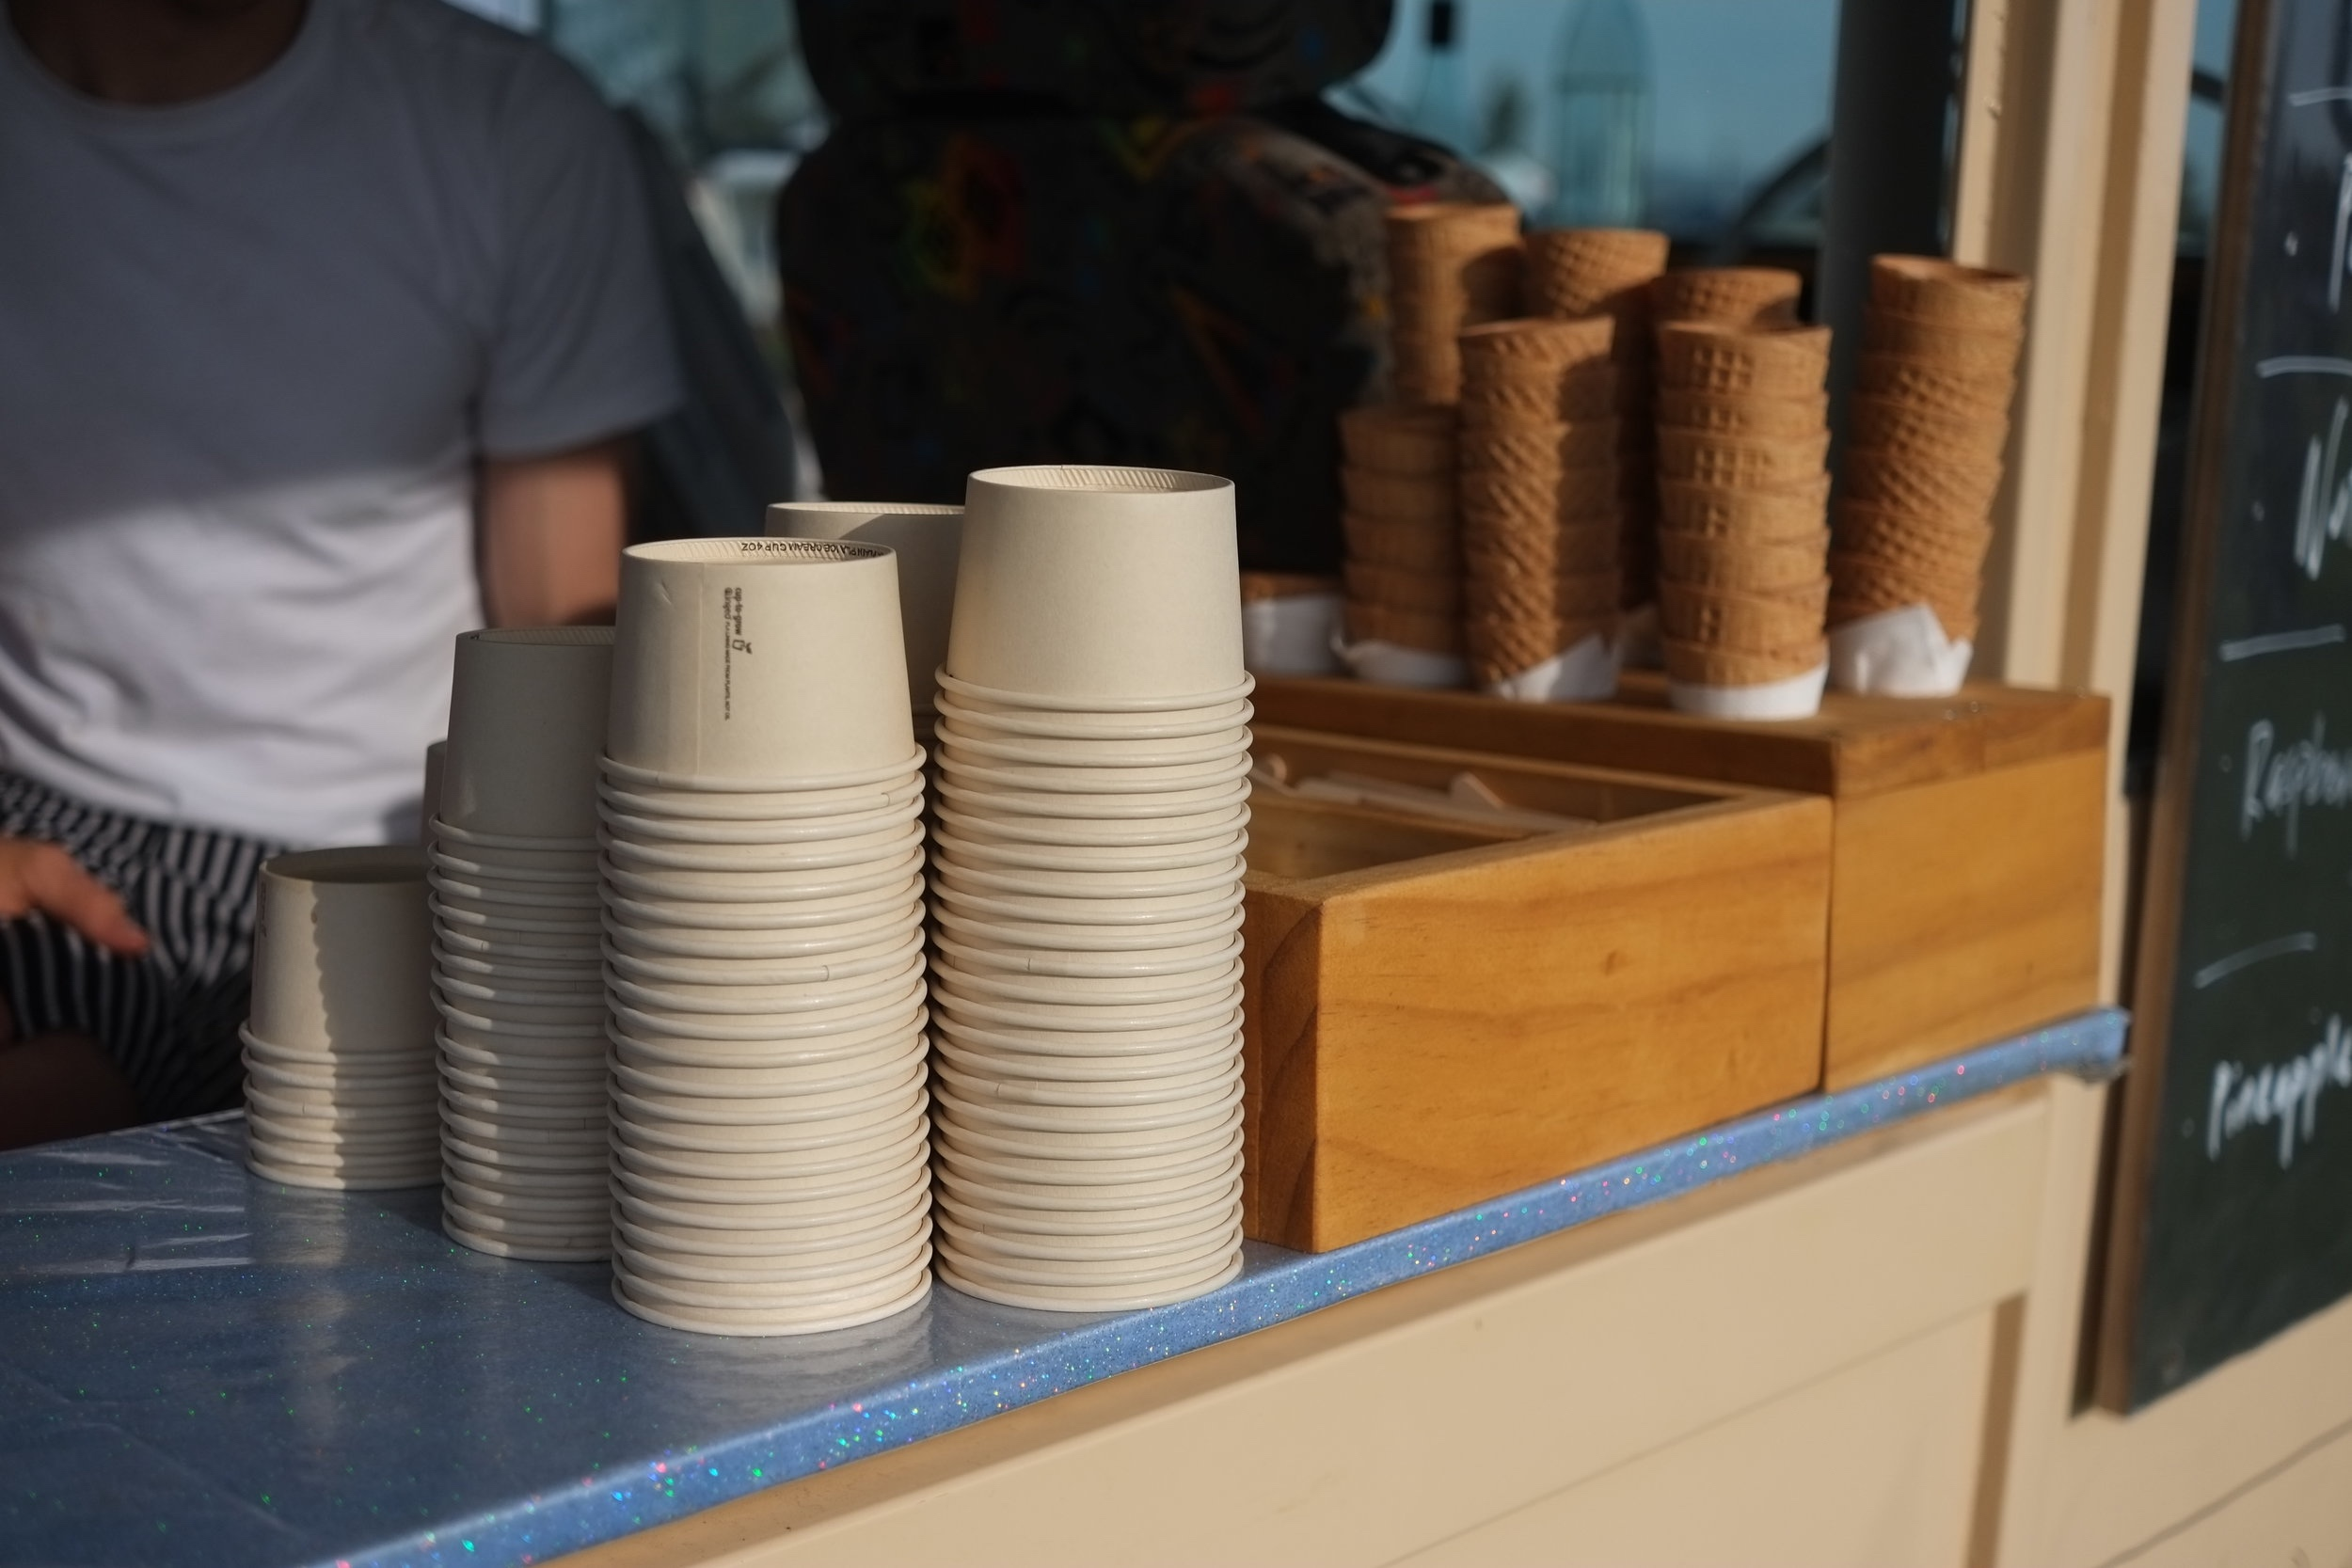 We only use compostable cups, spoons and serviettes.